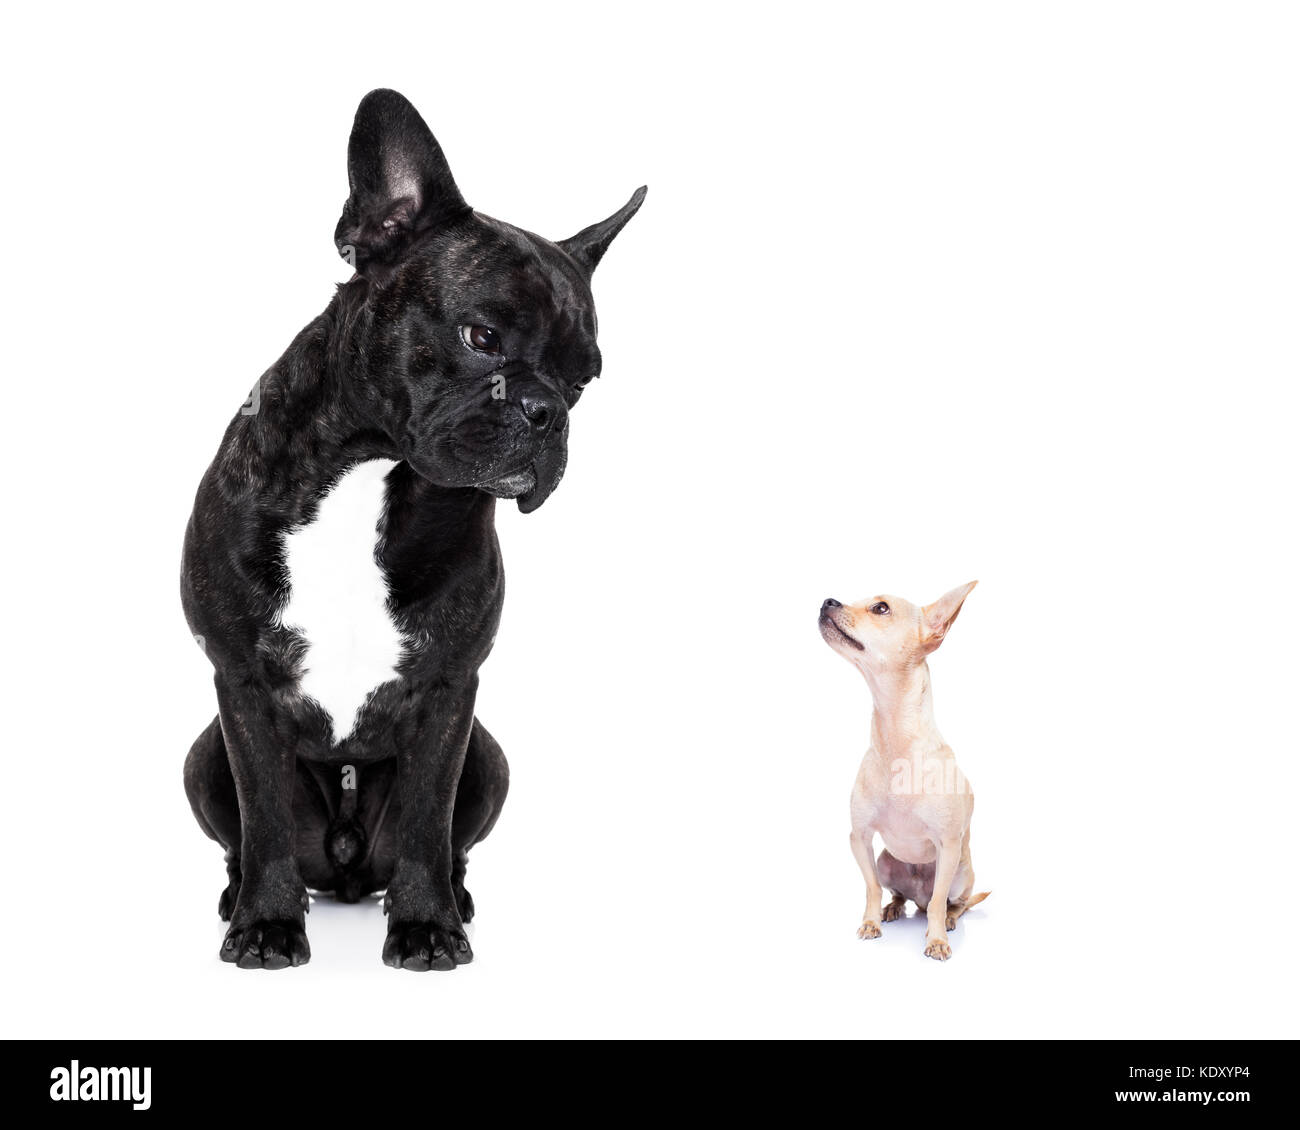 a big french bulldog and small tiny chihuahua dog looking at each other, feelings involved, isolated on white background - Stock Image